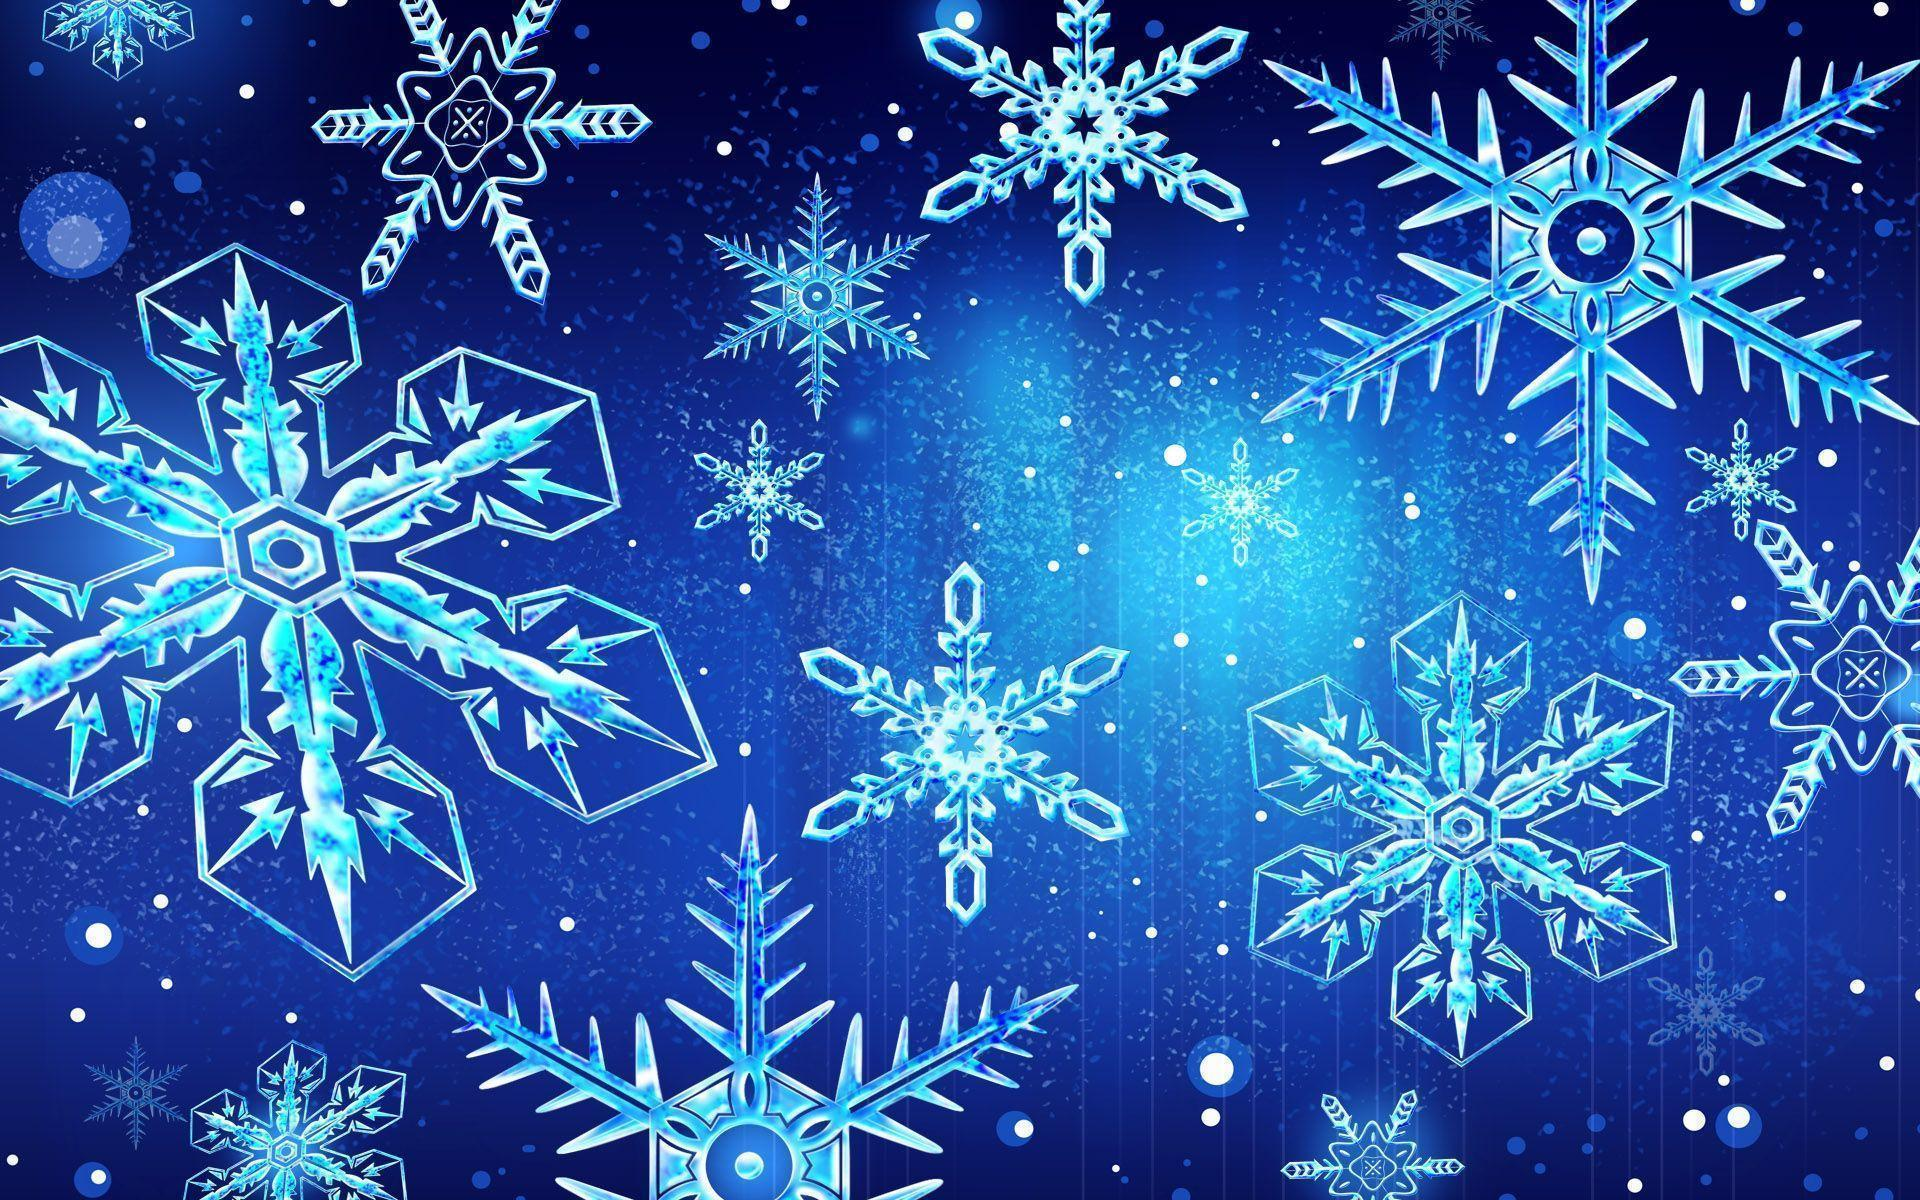 1950 Christmas Wallpapers | Christmas Backgrounds